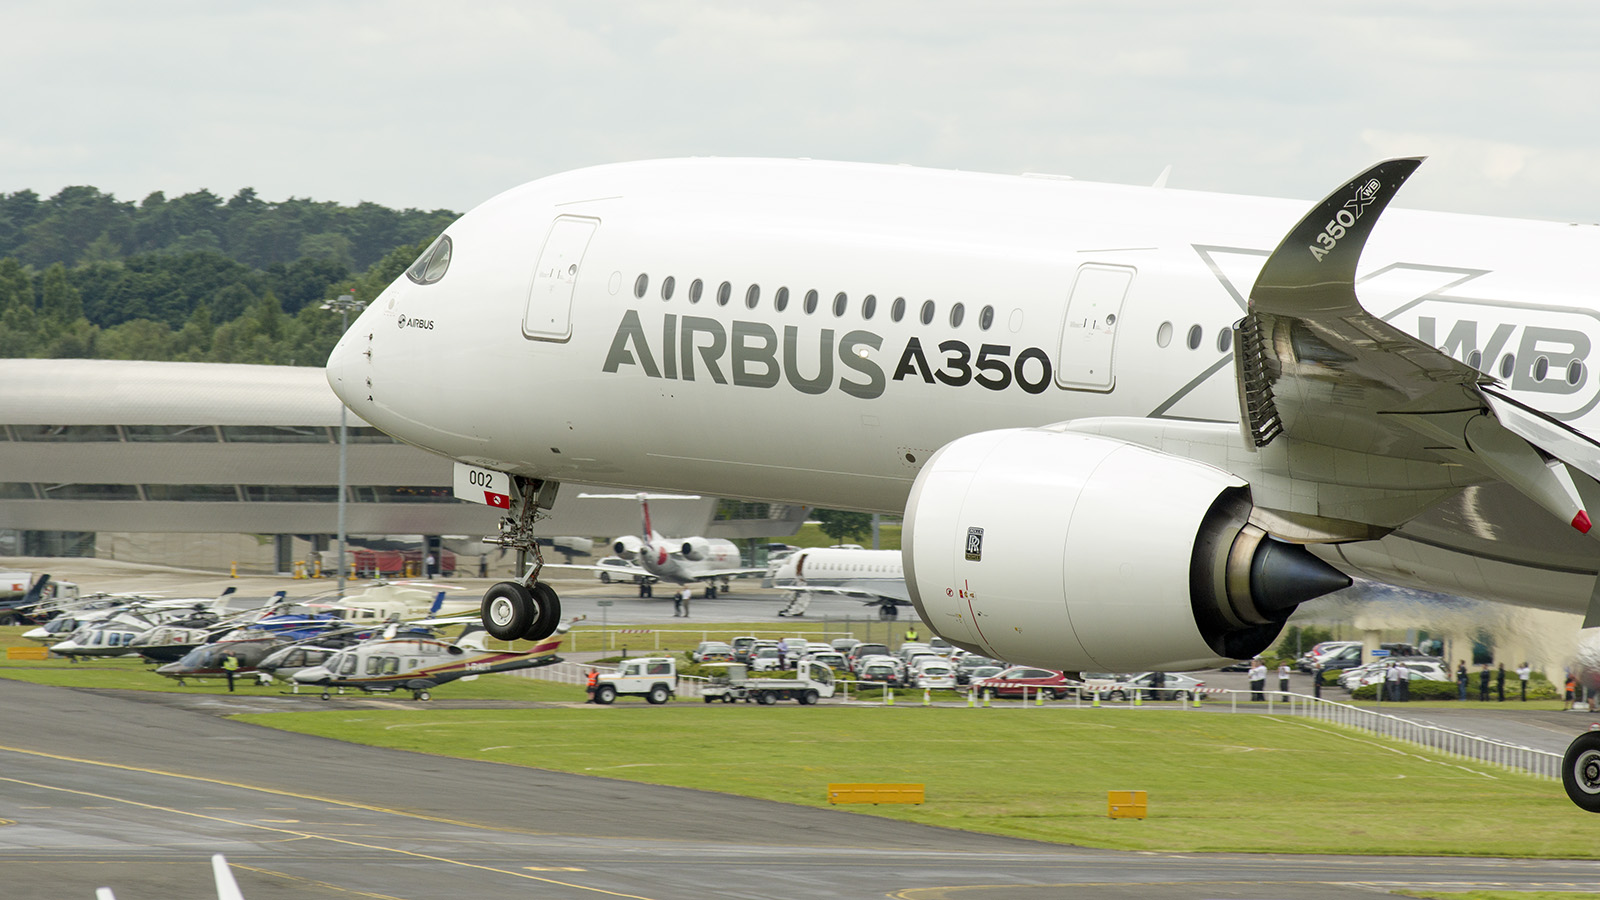 _IMG5648 Airbus A350-941 Airbus F-WWCF s